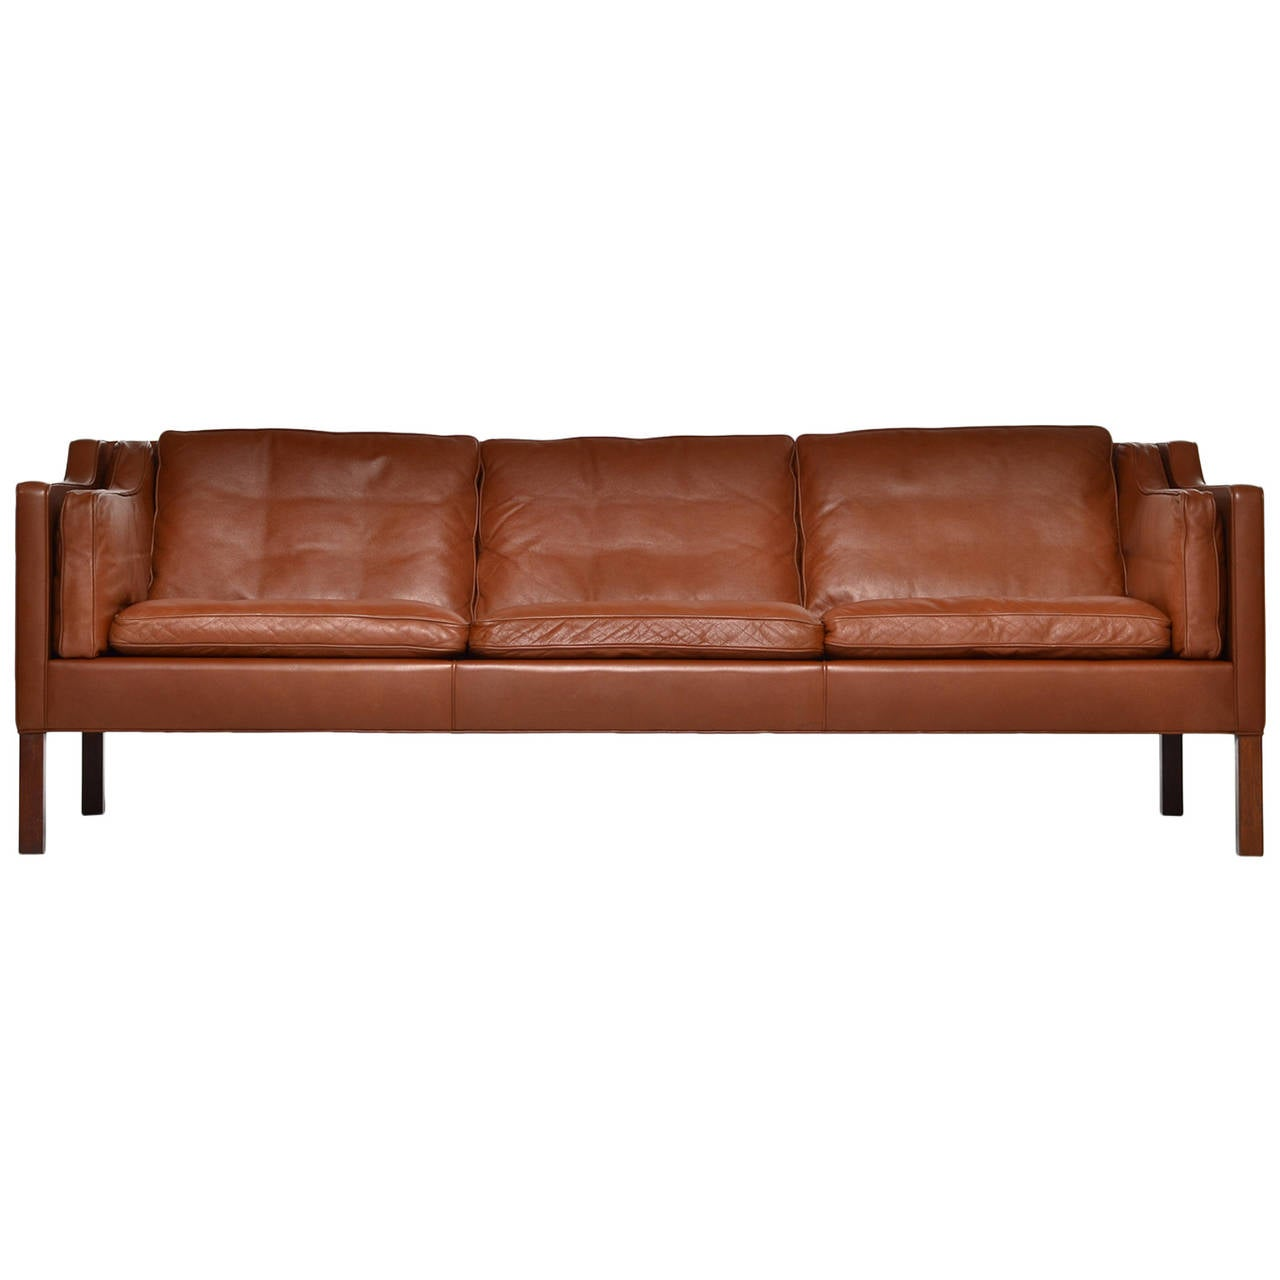 cognac leather sofa model 2213 by b rge mogensen for